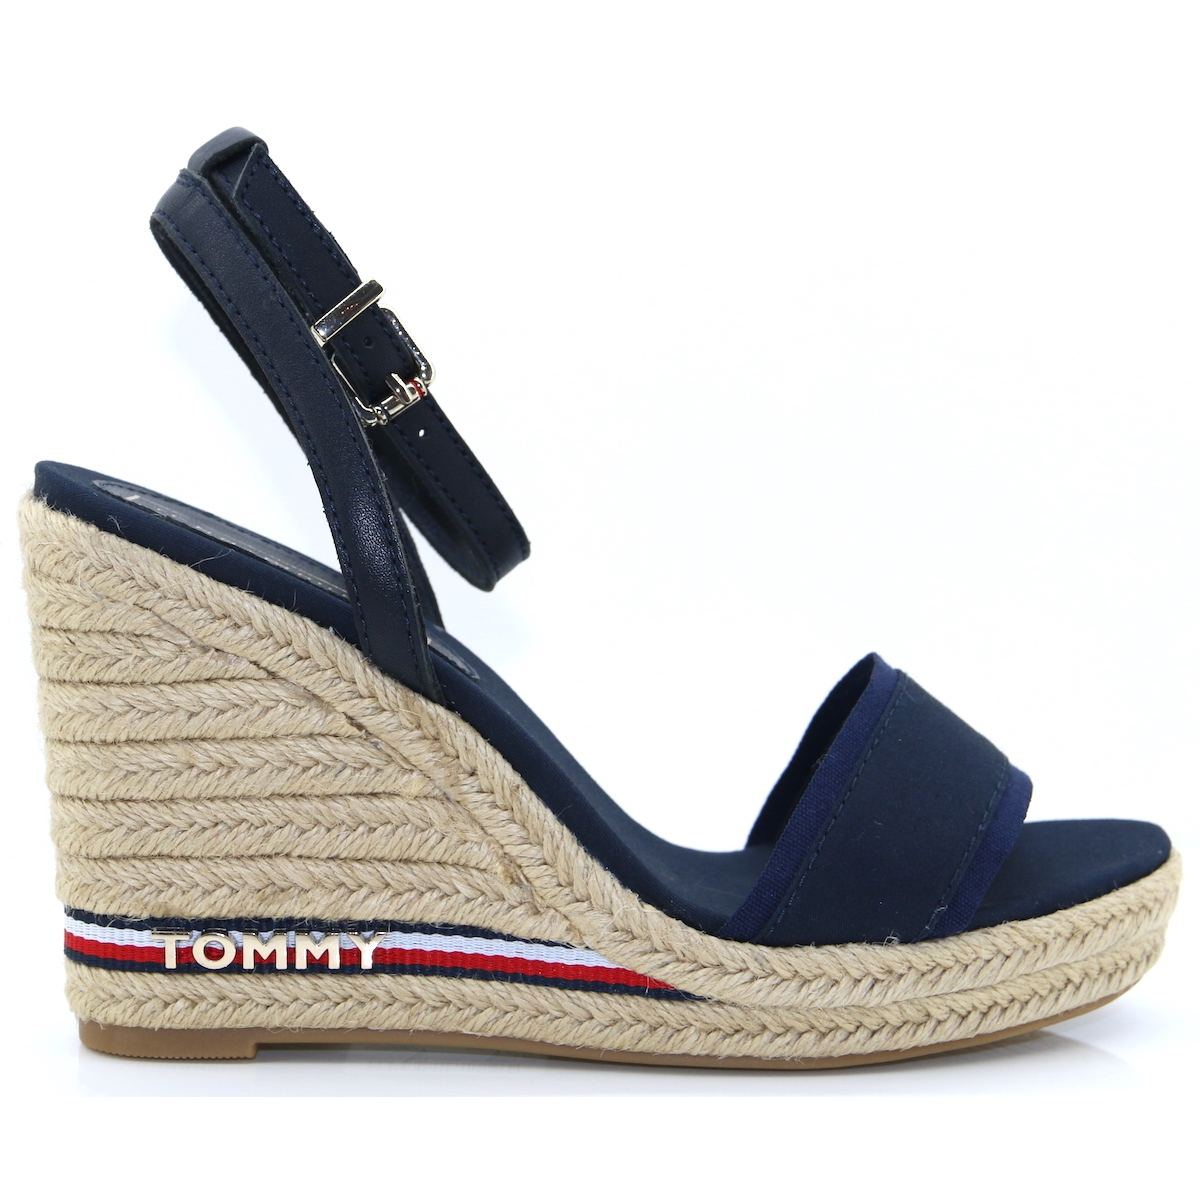 7b2837164 Enter Email Address. Iconic Elena Corp.Ribbon - Tommy Hilfiger MIDNIGHT  WEDGES. Tap to expand